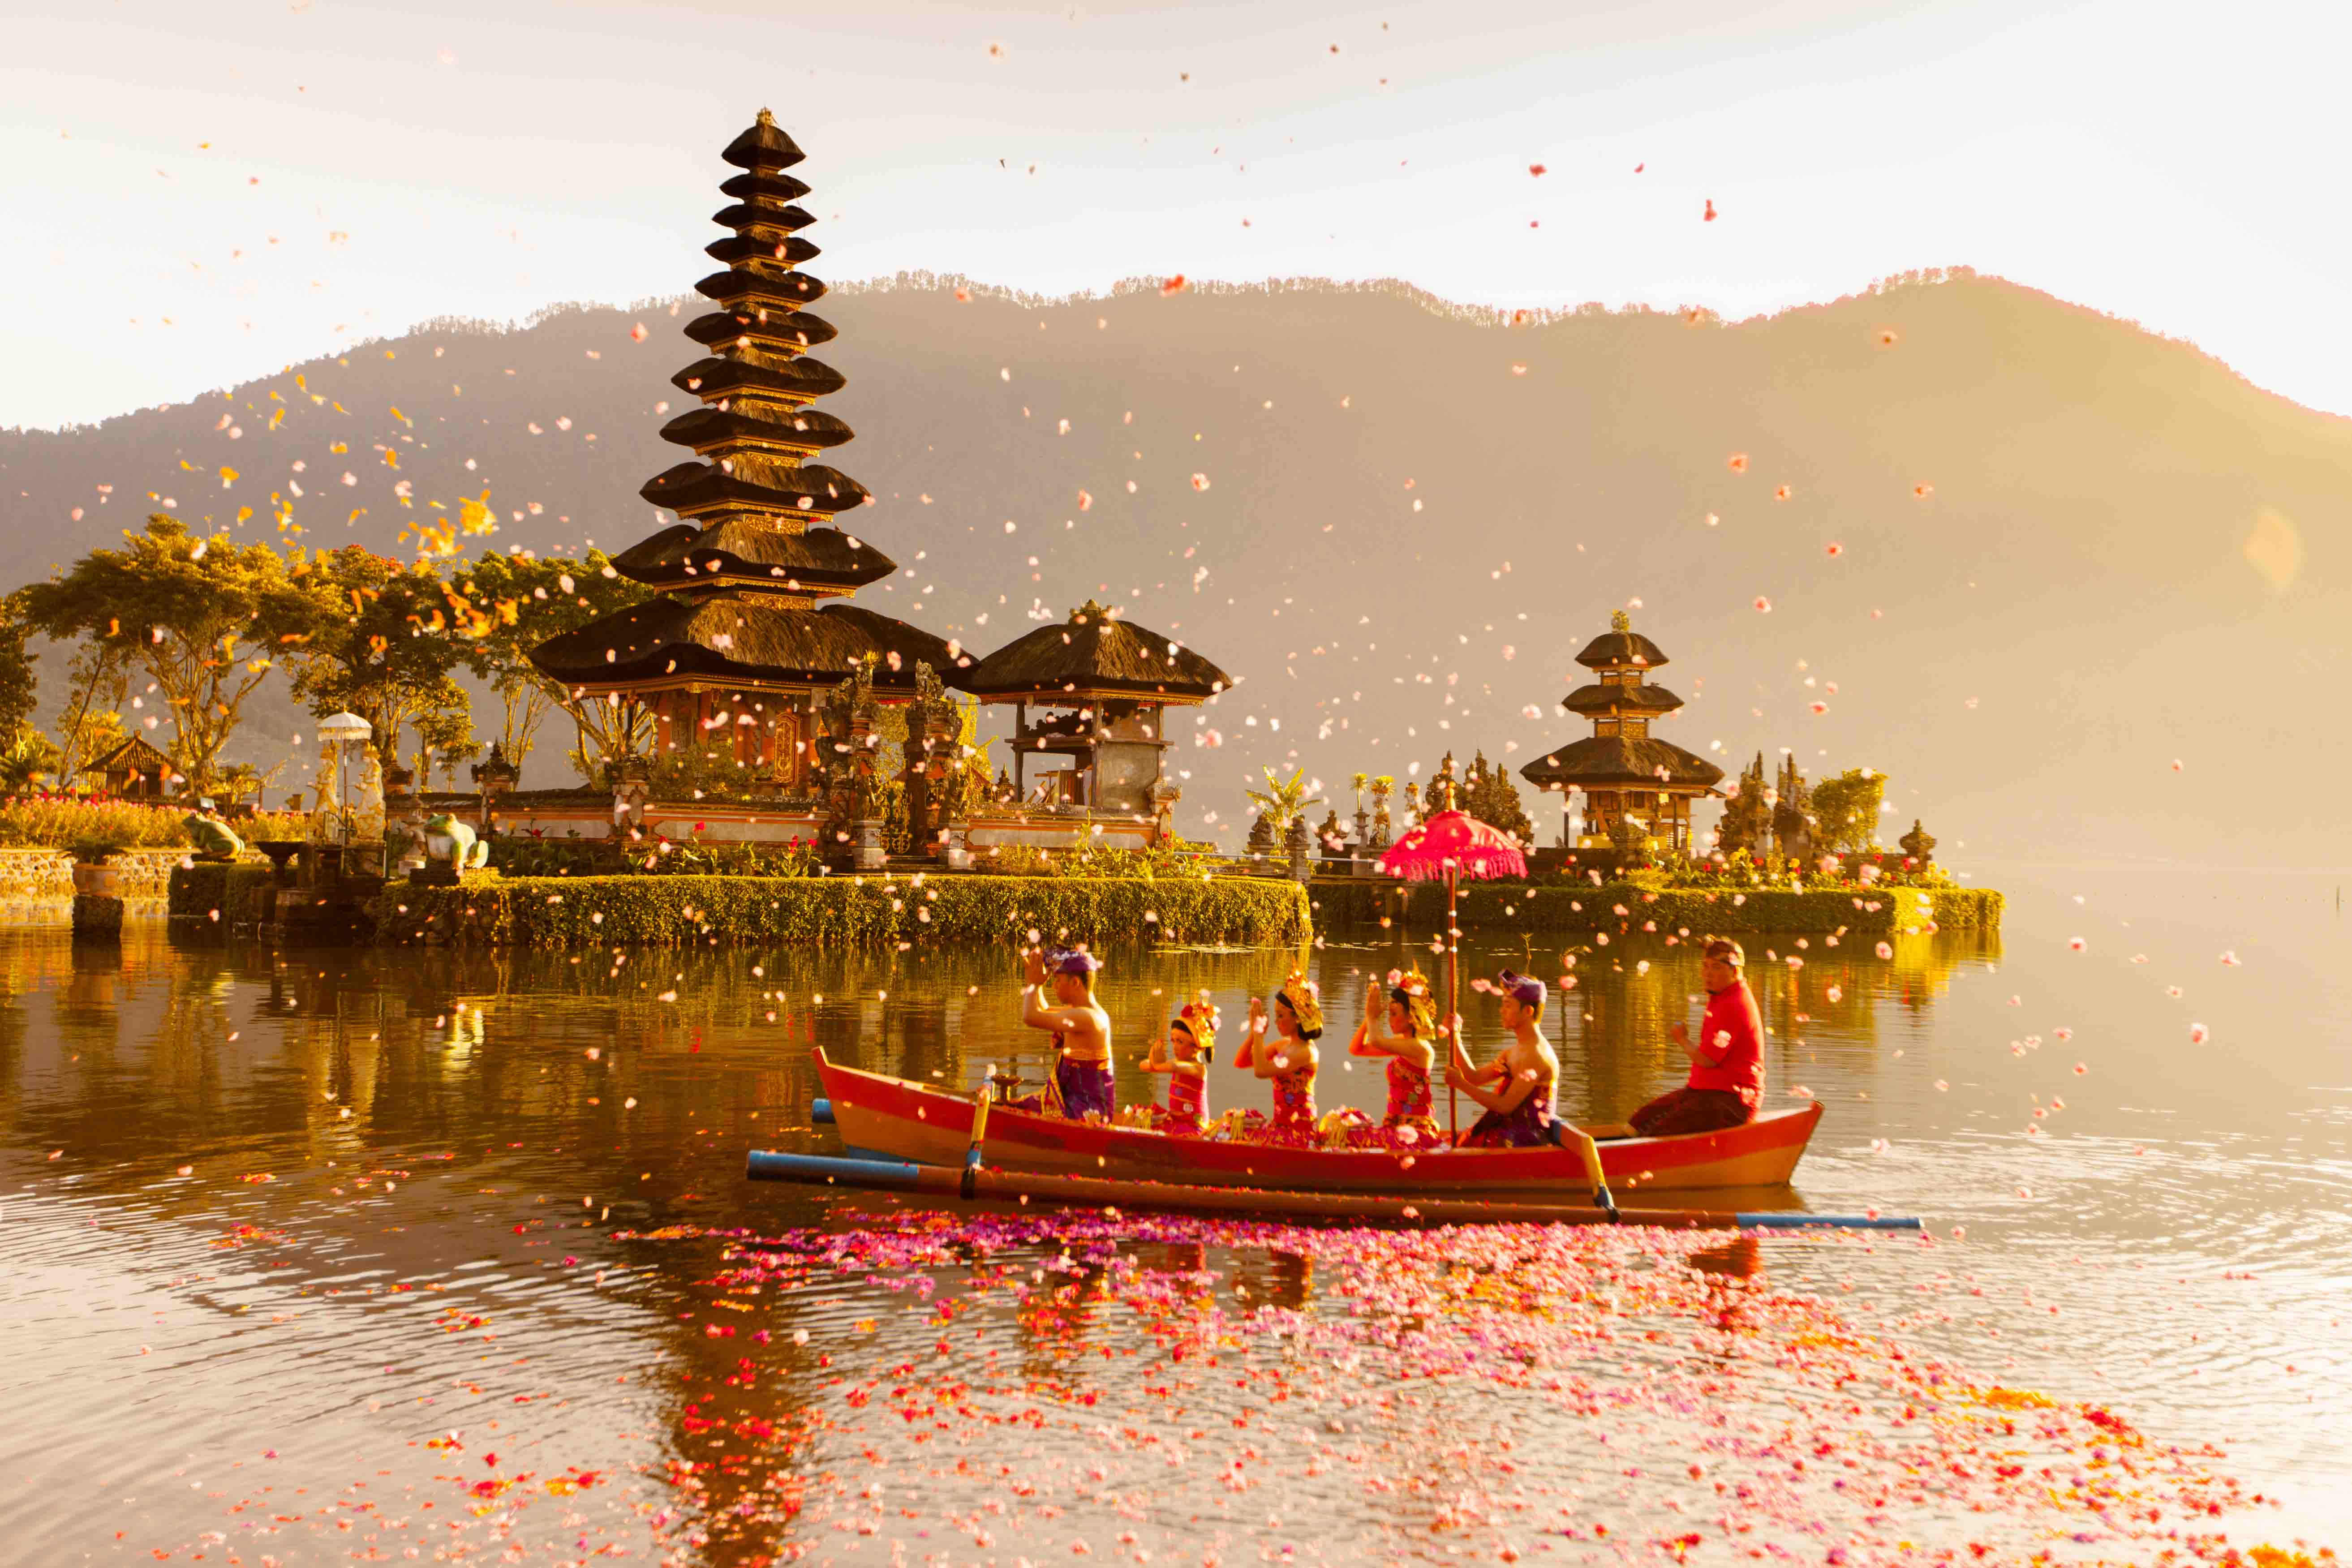 THE MOST AWE-INSPIRING BALINESE TEMPLES TO VISIT